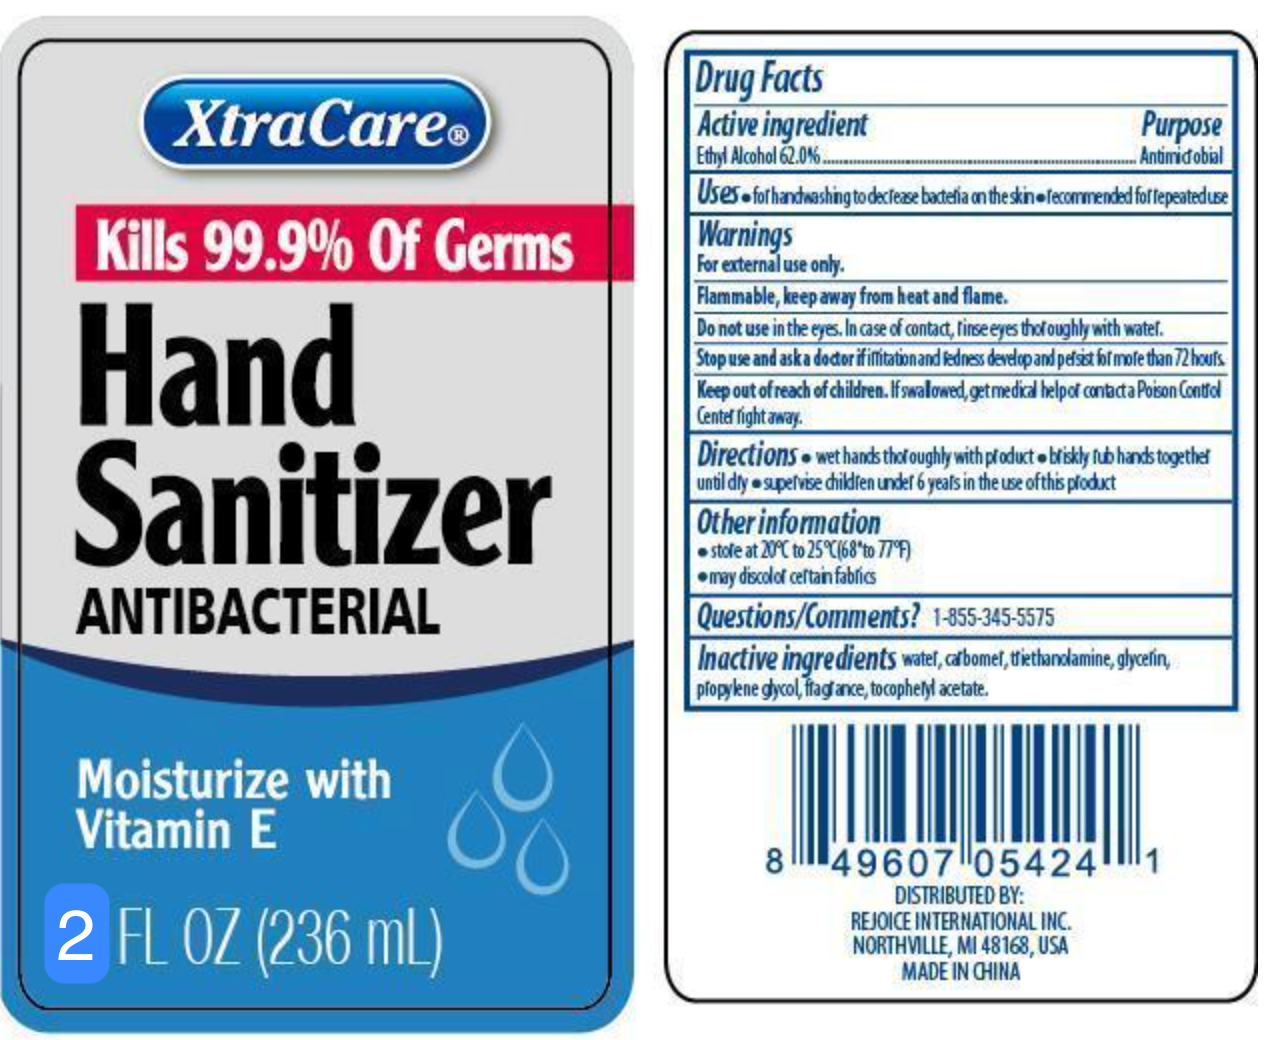 XTRACARE HAND SANITIZER MOISTURIZES WITH VITAMIN E AND ALOE